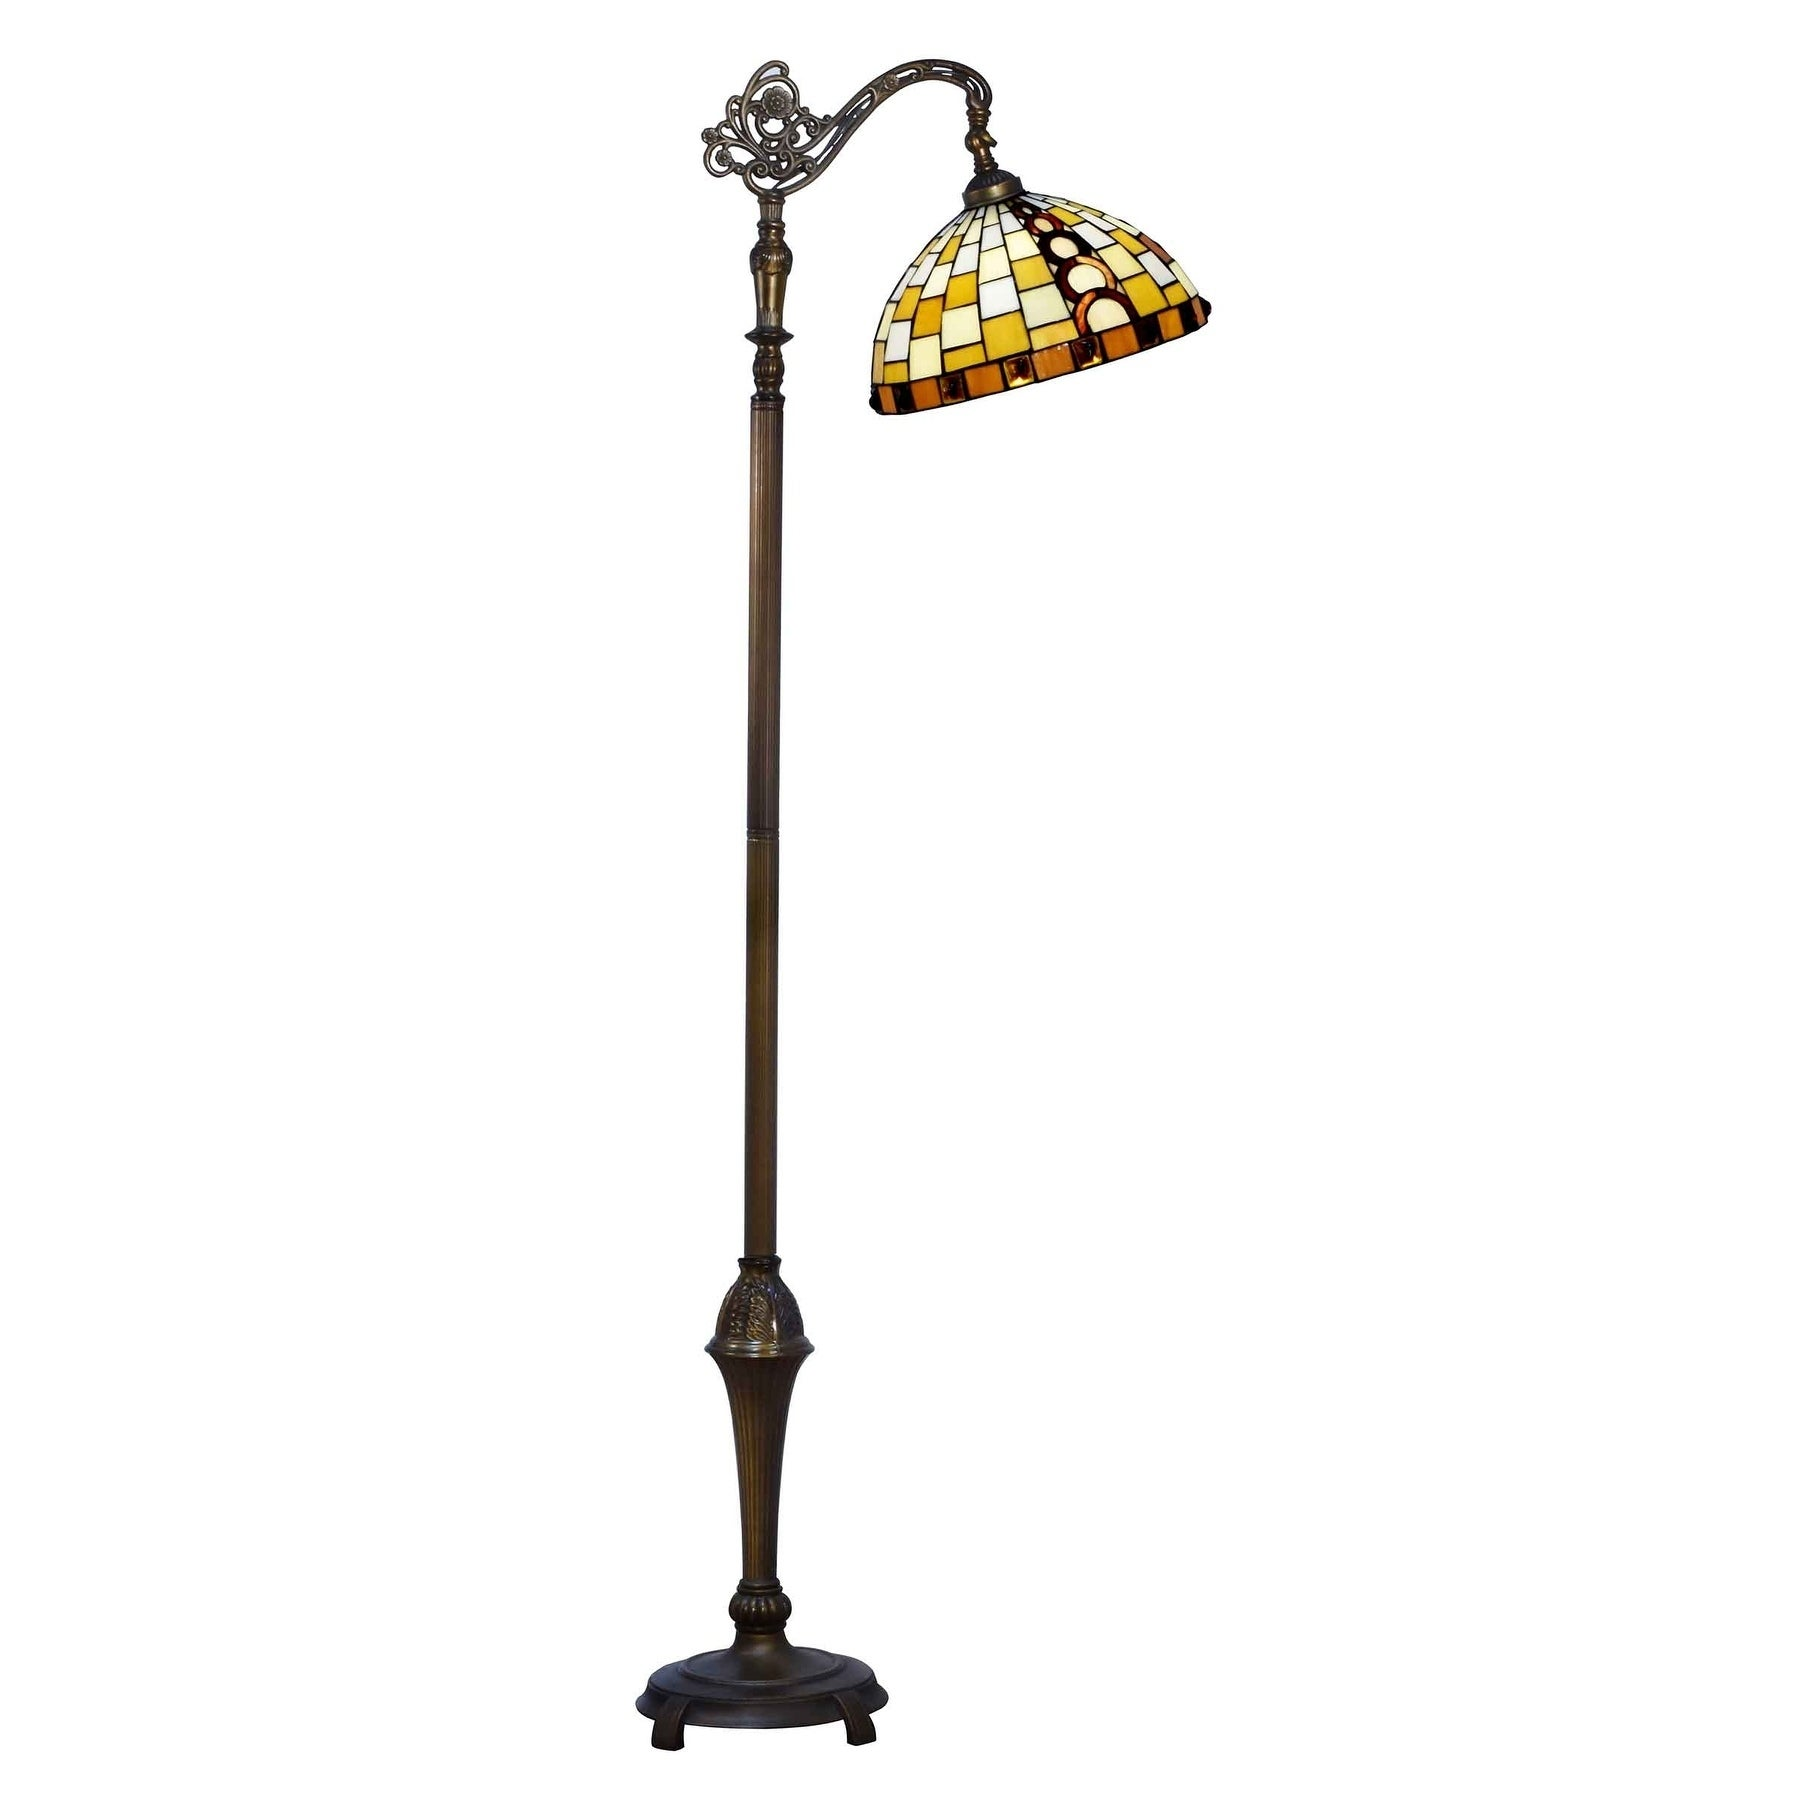 Shop dale tiffany select 63 in h mackey directional downbridge shop dale tiffany select 63 in h mackey directional downbridge floor lamp on sale free shipping today overstock 18111520 aloadofball Images